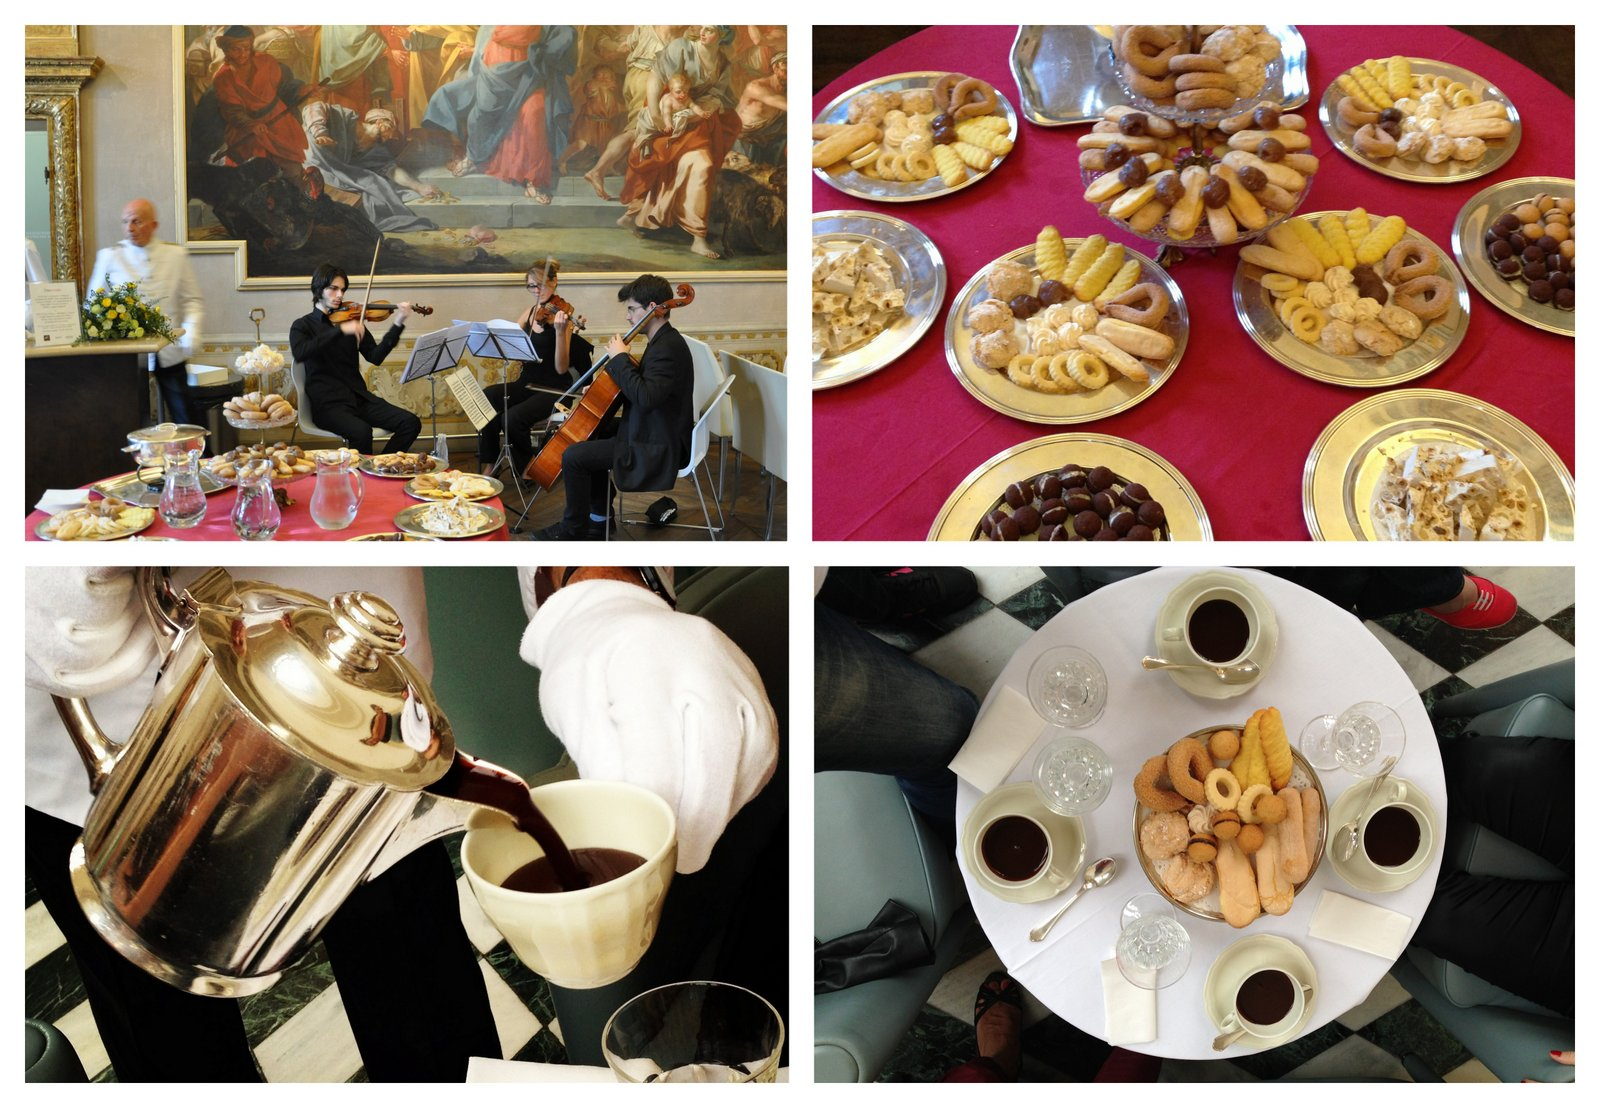 Chocolat chaud à la mode royale au Palazzo Madama